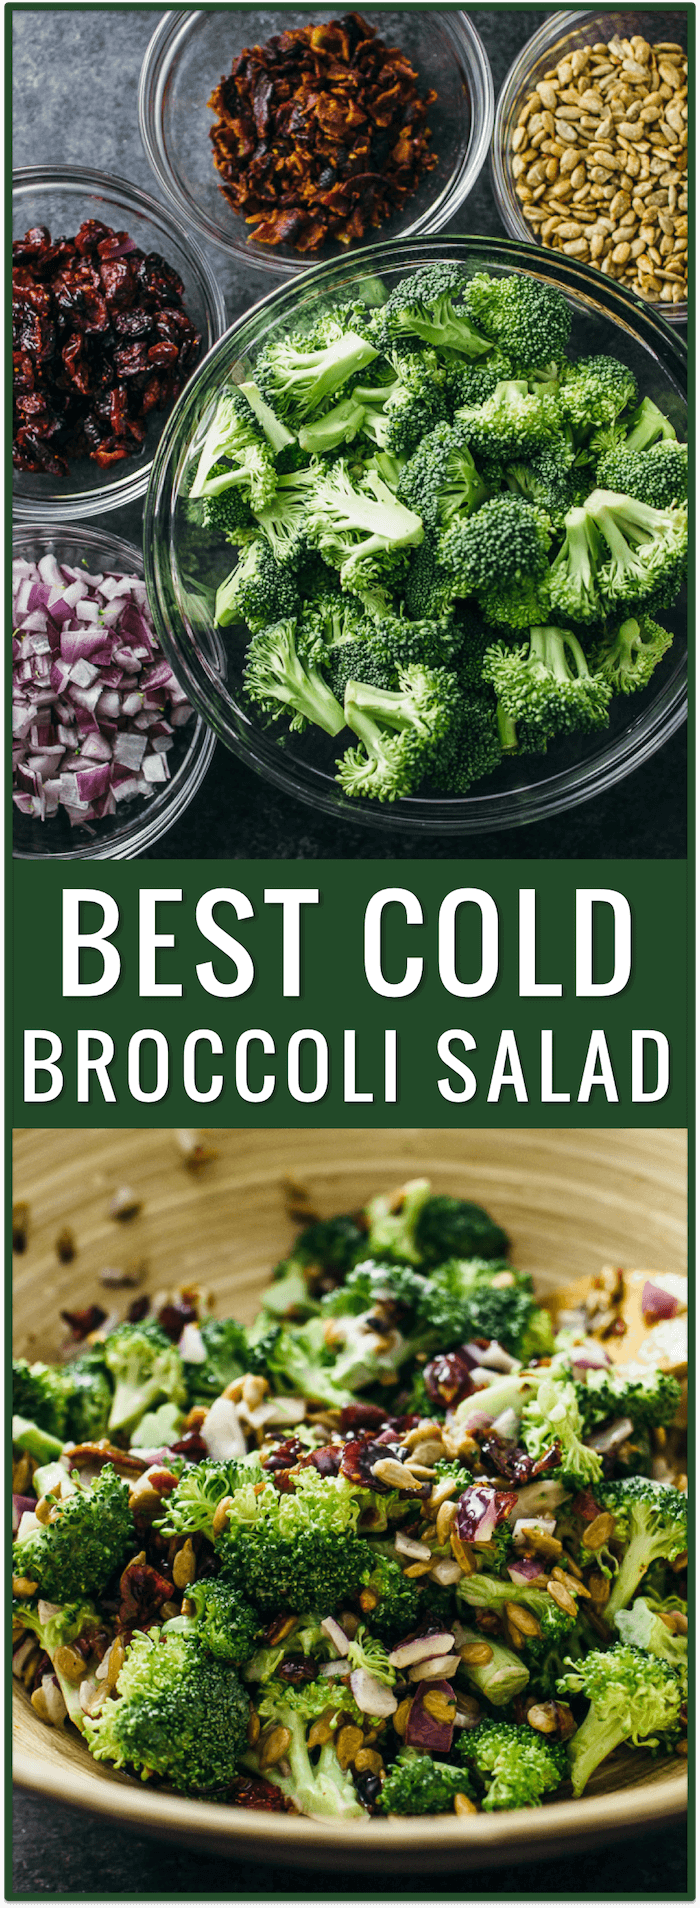 best cold broccoli salad with bacon and cranberries, raisins, healthy, easy, recipe, appetizer, side dish, simple, fast, dinner, lunch, snack, party, idea